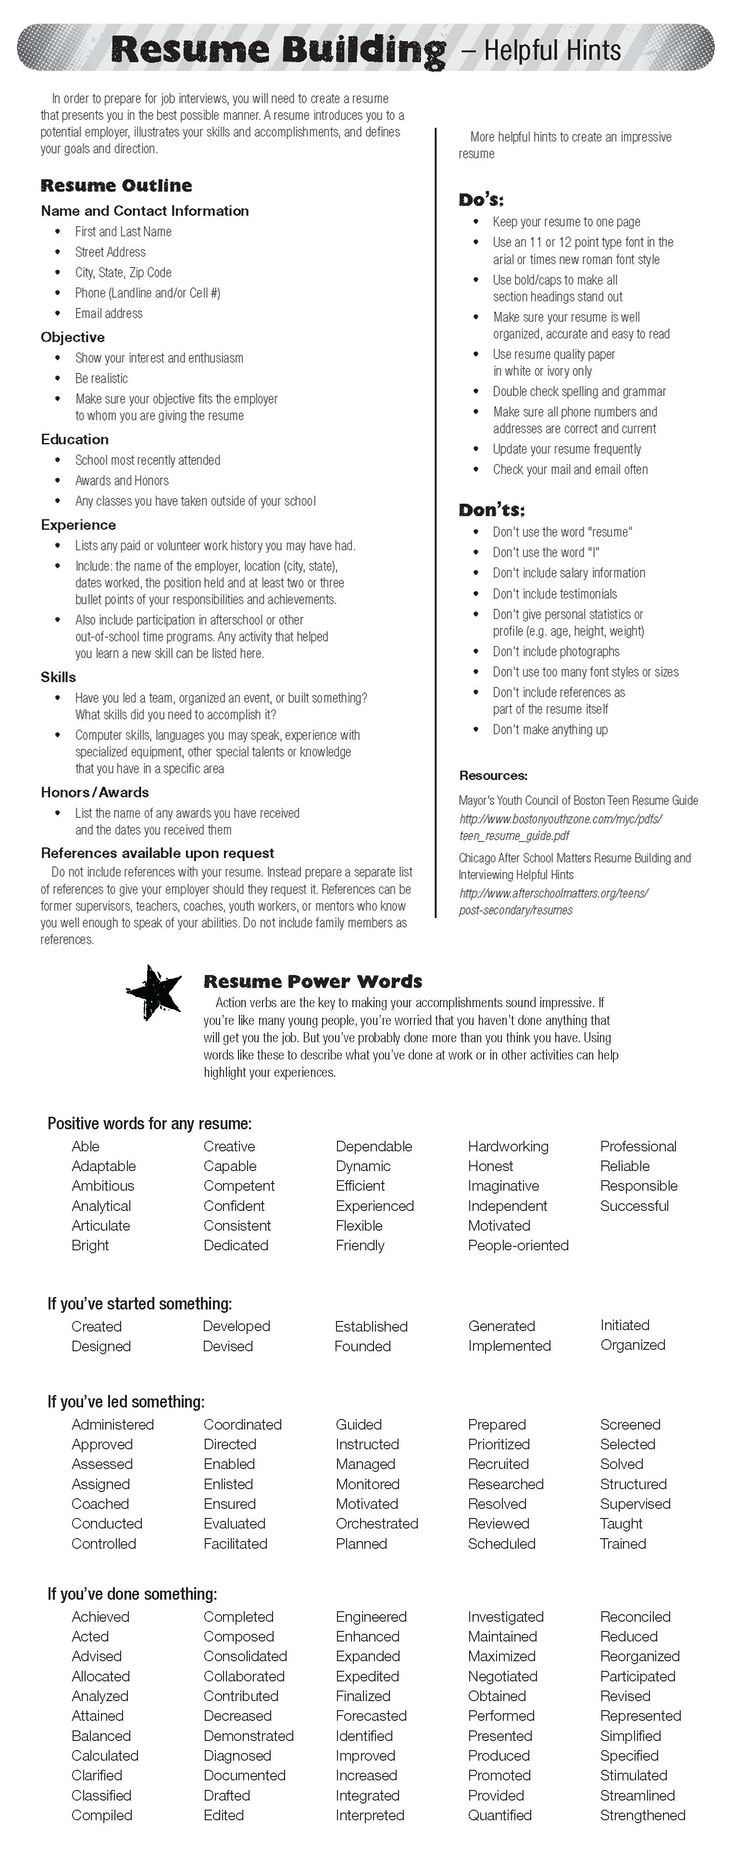 Opposenewapstandardsus  Pleasing  Ideas About Resume On Pinterest  Cv Format Resume Cv And  With Remarkable  Ideas About Resume On Pinterest  Cv Format Resume Cv And Resume Templates With Enchanting Meaning Of Resume Also Resume Heading In Addition Resume Template Open Office And Sample Federal Resume As Well As Resume Bulider Additionally Beowulf Resume From Pinterestcom With Opposenewapstandardsus  Remarkable  Ideas About Resume On Pinterest  Cv Format Resume Cv And  With Enchanting  Ideas About Resume On Pinterest  Cv Format Resume Cv And Resume Templates And Pleasing Meaning Of Resume Also Resume Heading In Addition Resume Template Open Office From Pinterestcom